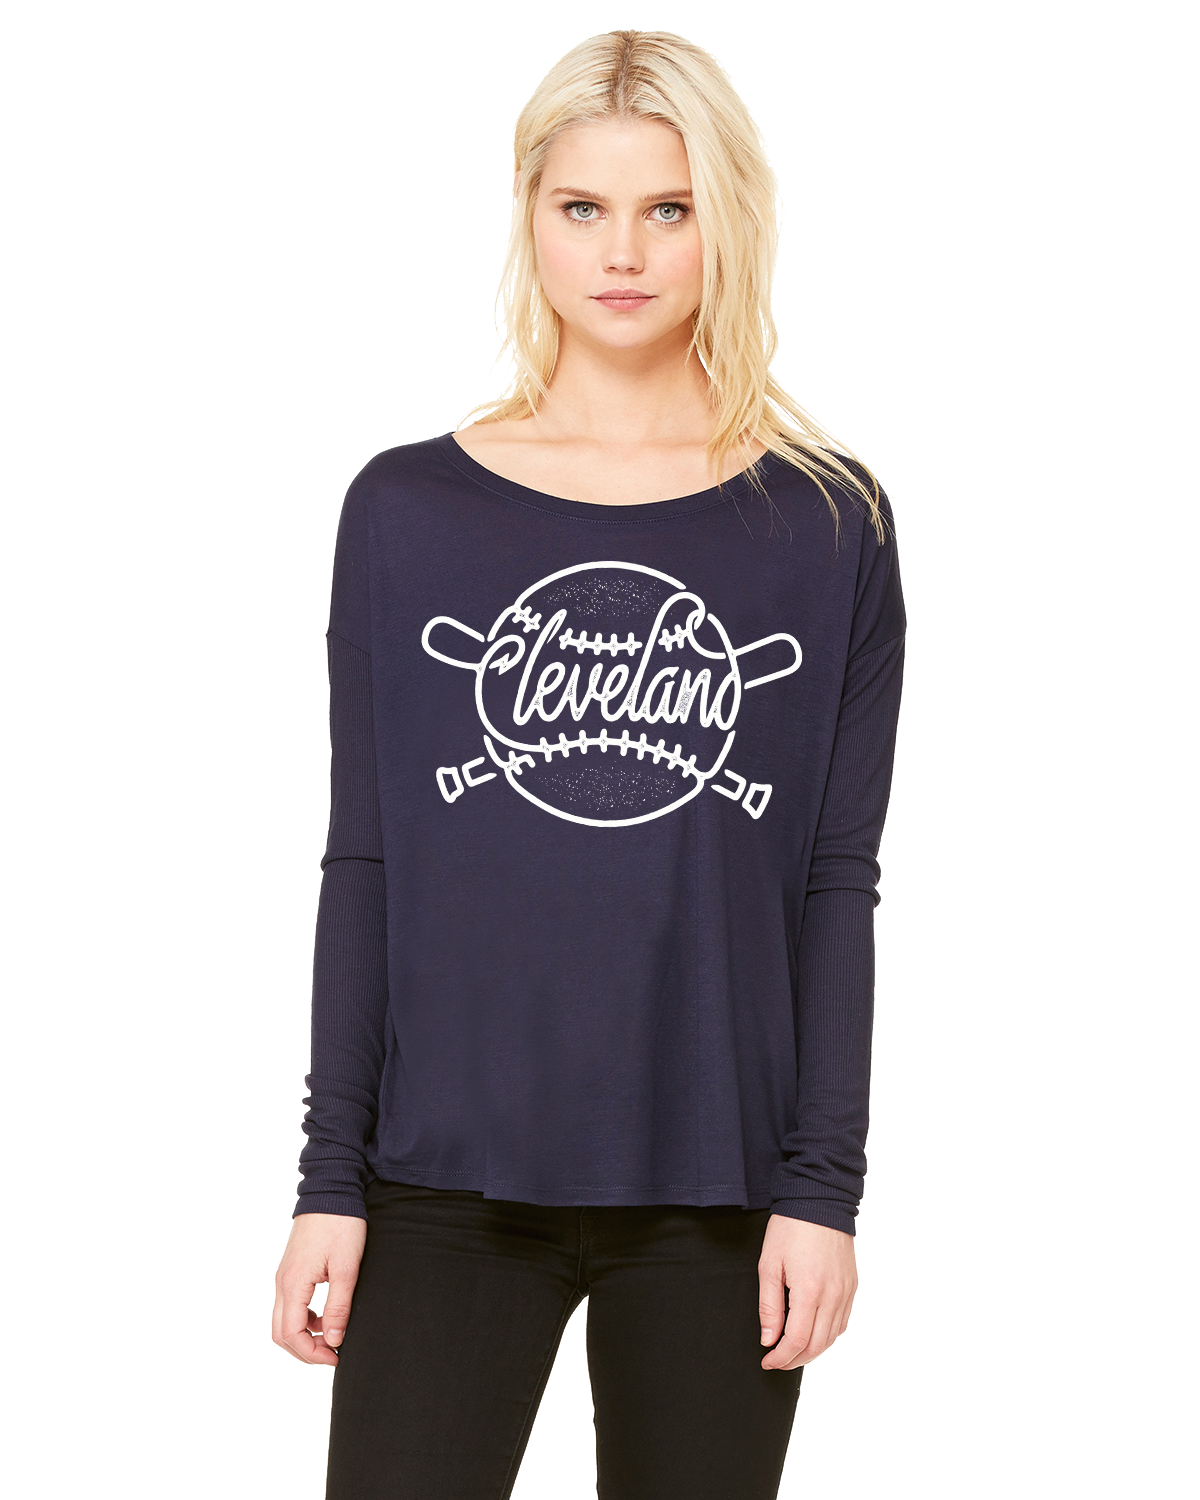 Image of Cleveland Baseball ladies navy long sleeve shirt